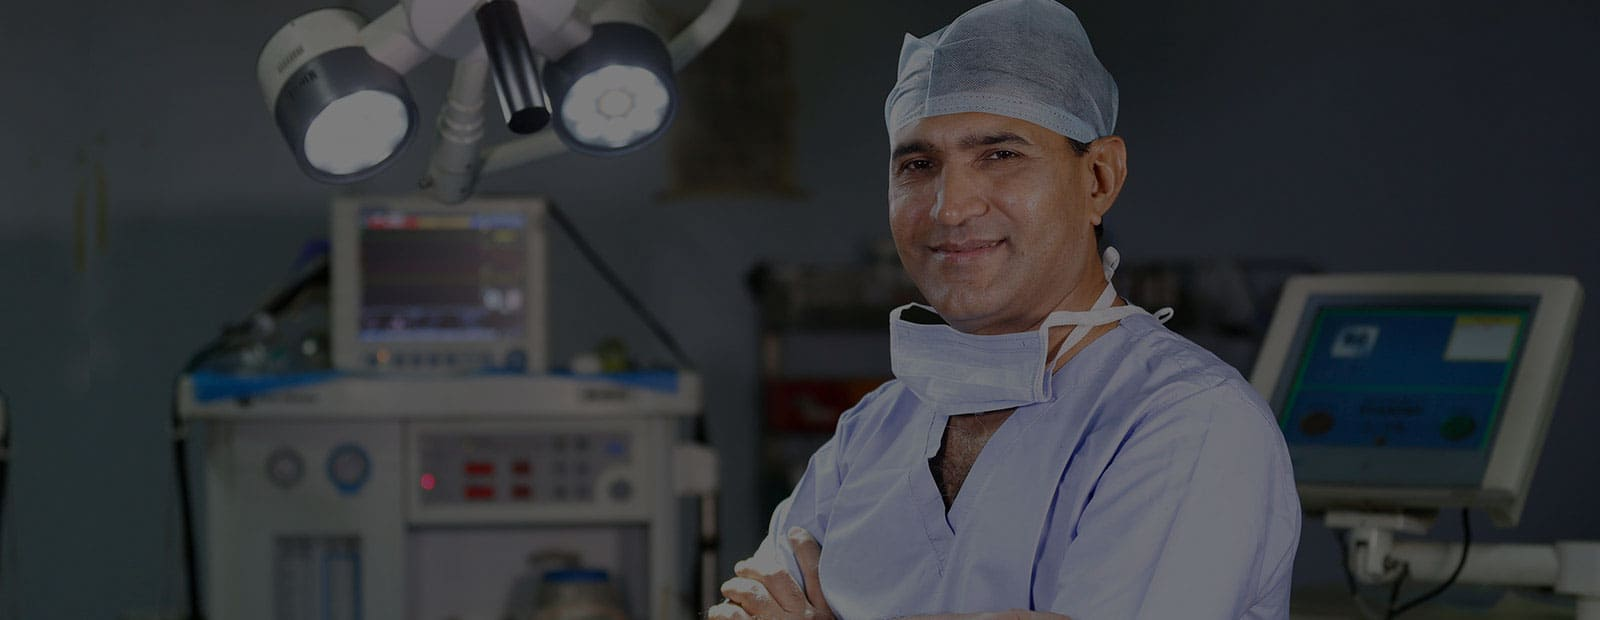 Kidney Hospital in India - Laparoscopic Surgery, Lithotripsy